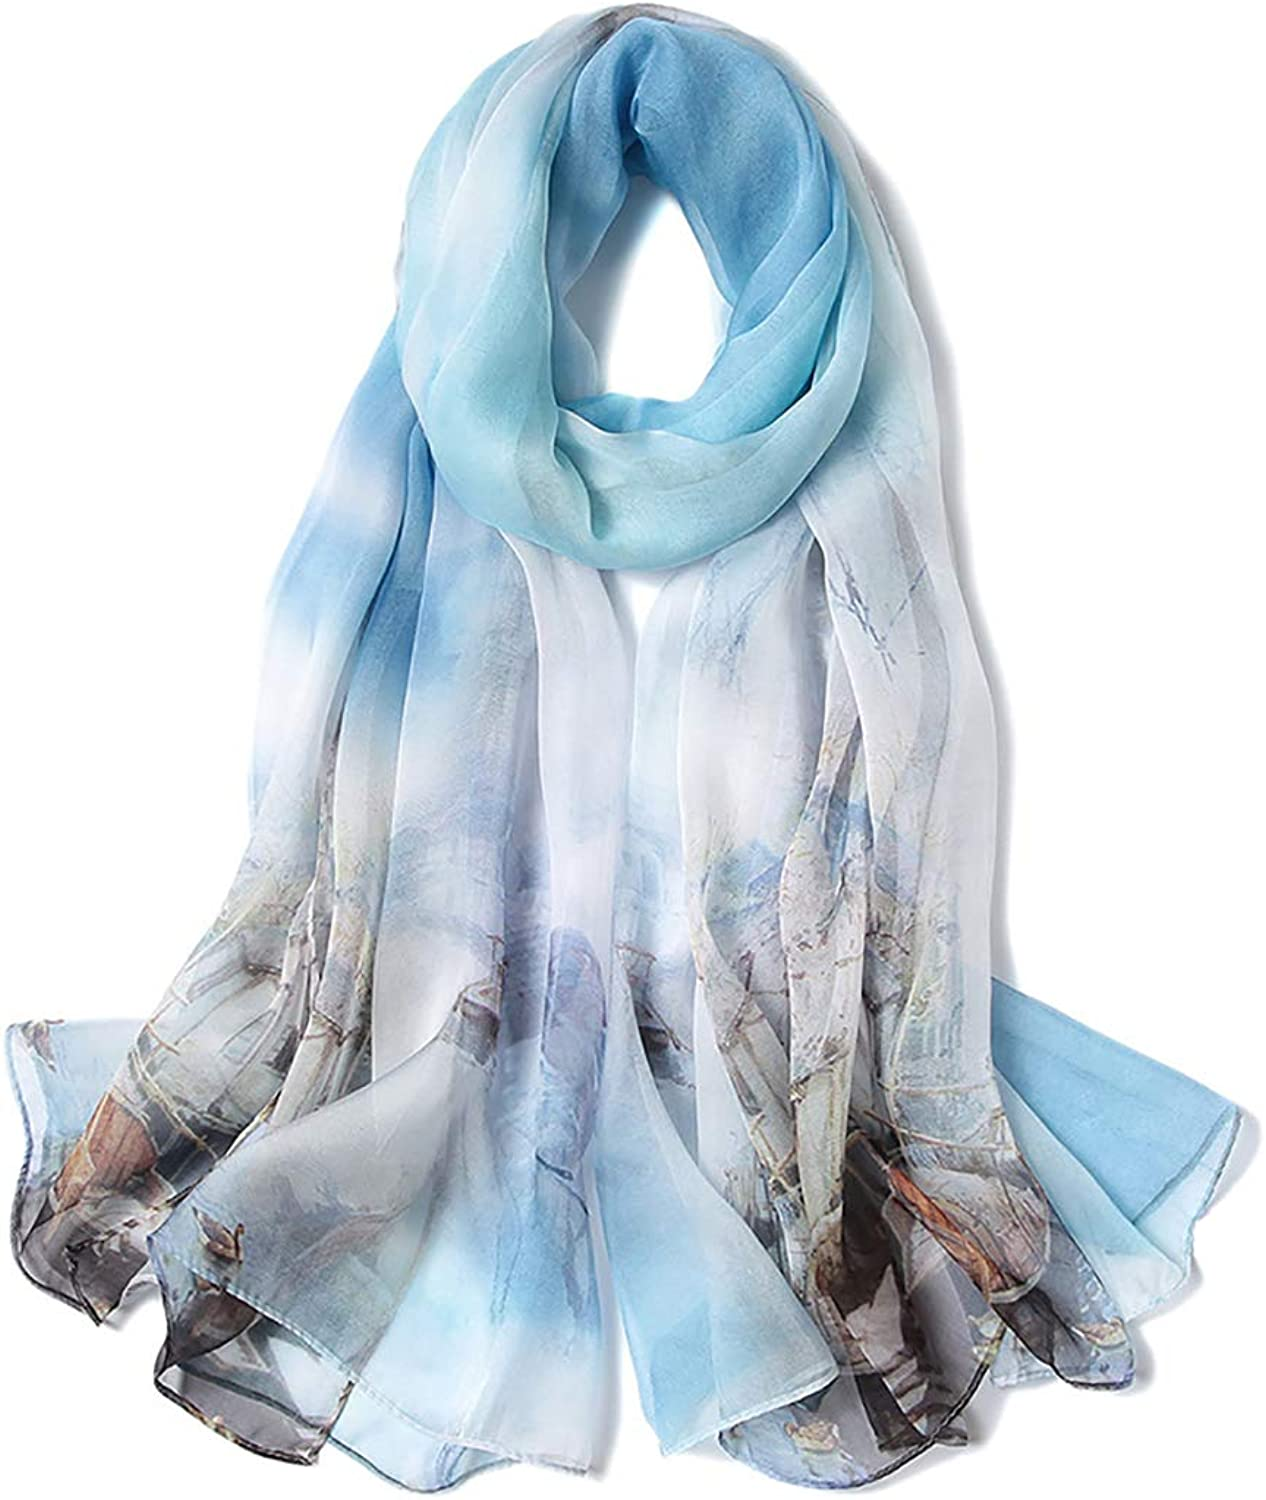 Female New Silk Scarf,Summer Sunscreen Natural Silk Shawl, Autumn and Winter Large Size Wild Long Scarves DualUse Beach Towel,170  110 cm